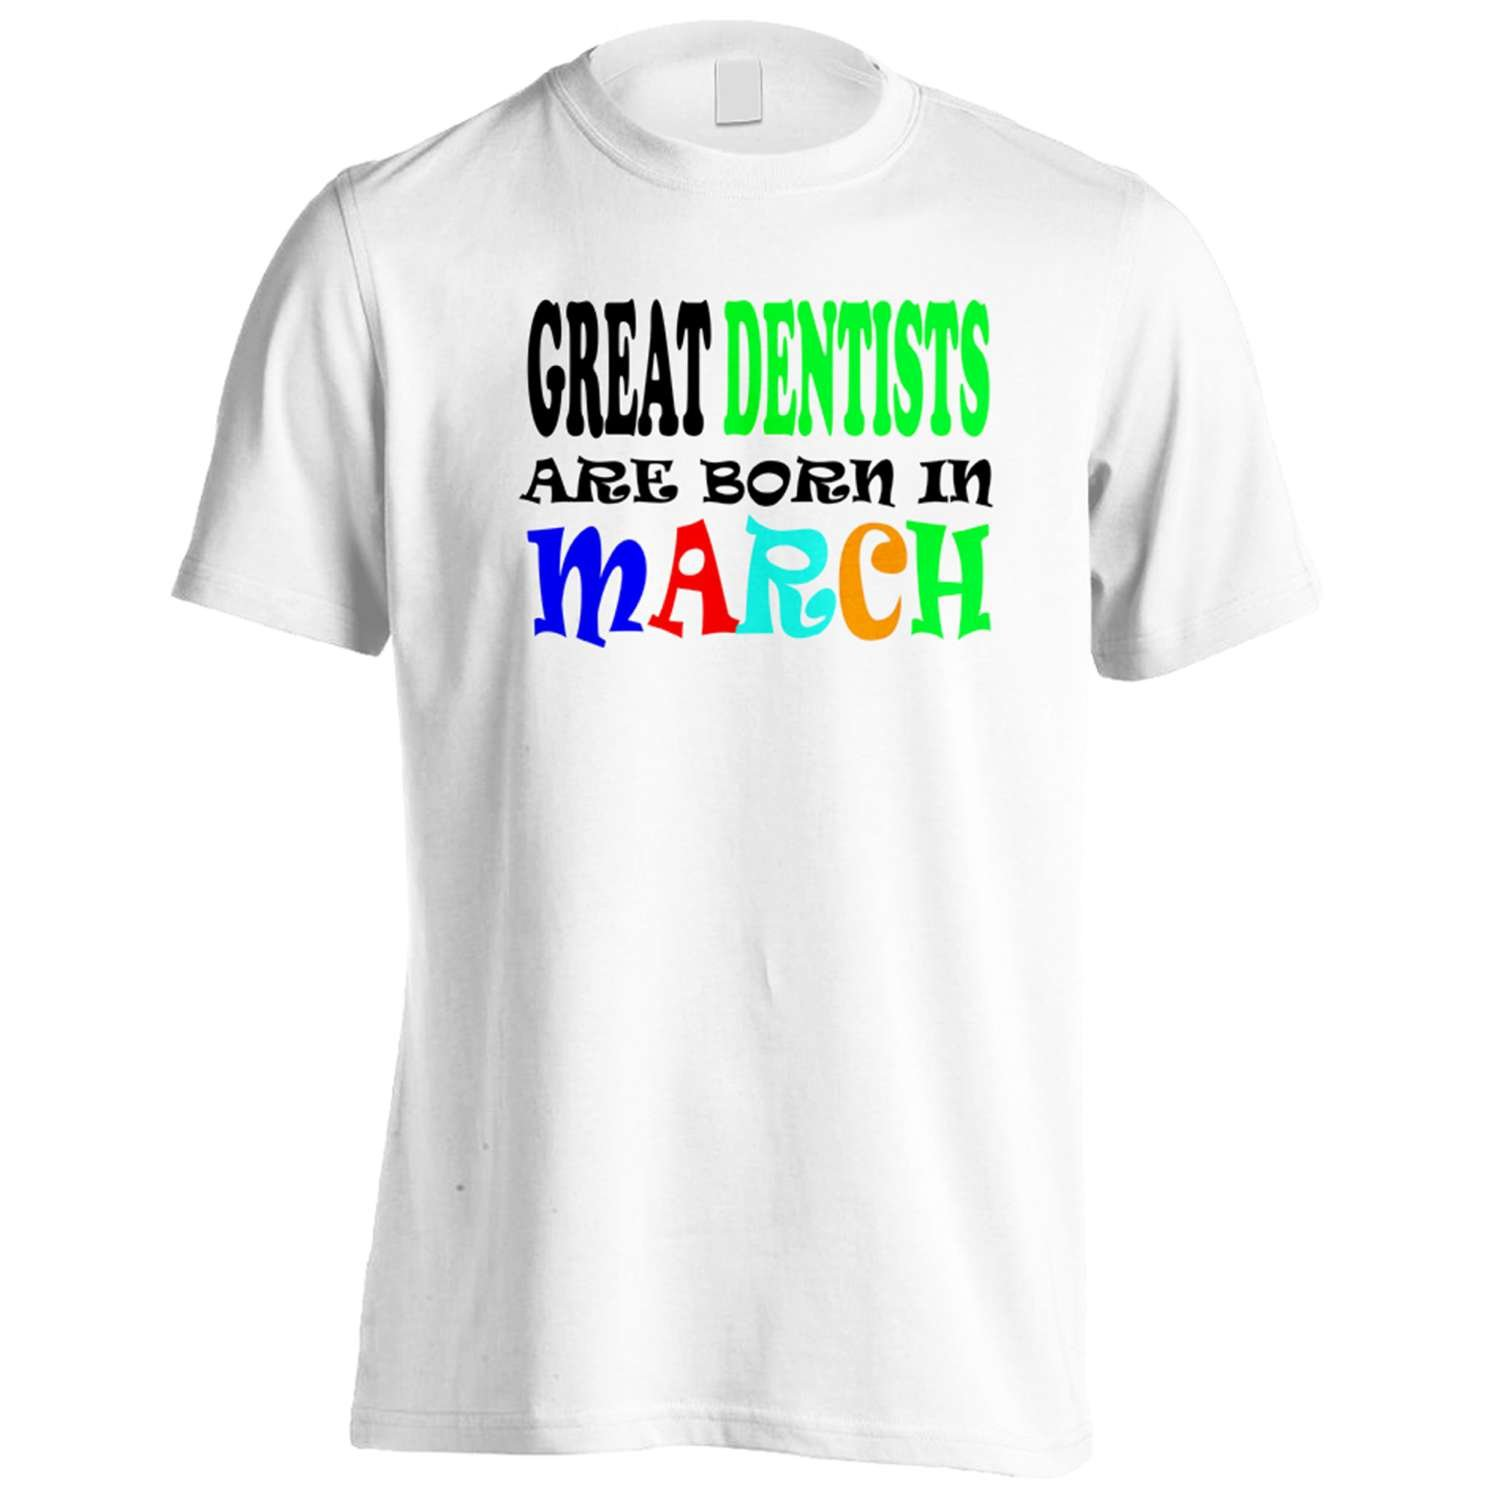 GREAT DENTISTS ARE BORN IN MARCH FUNNY Men's T-Shirt Tee w64m